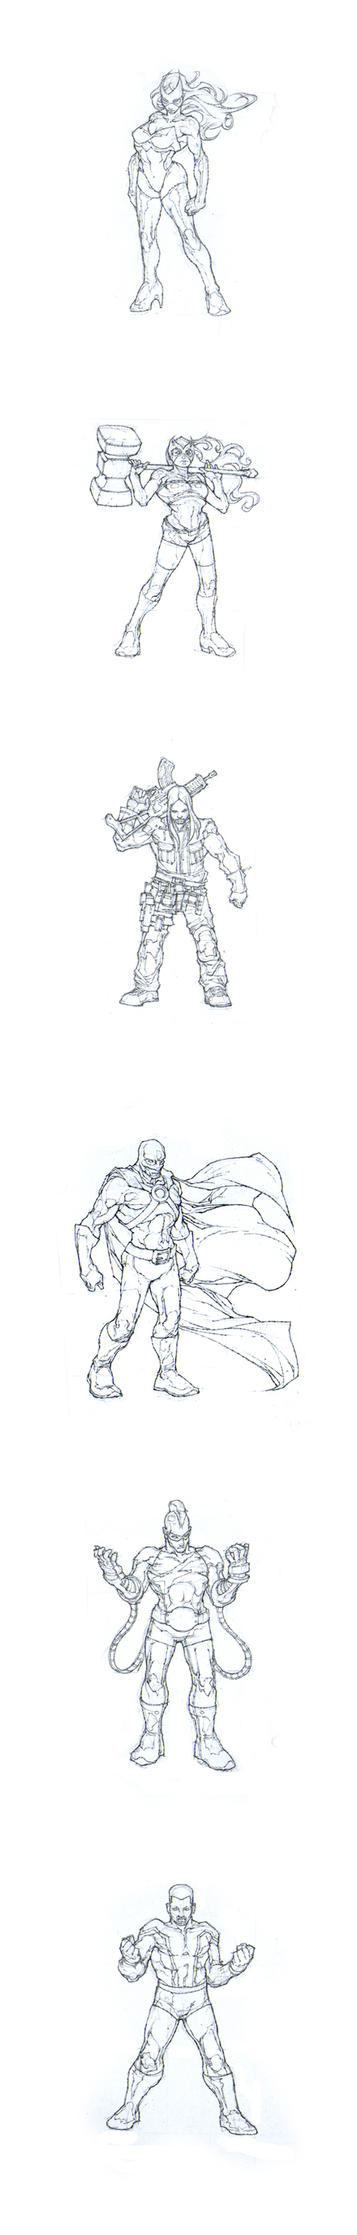 layouts for weturner72 by noelrodriguez